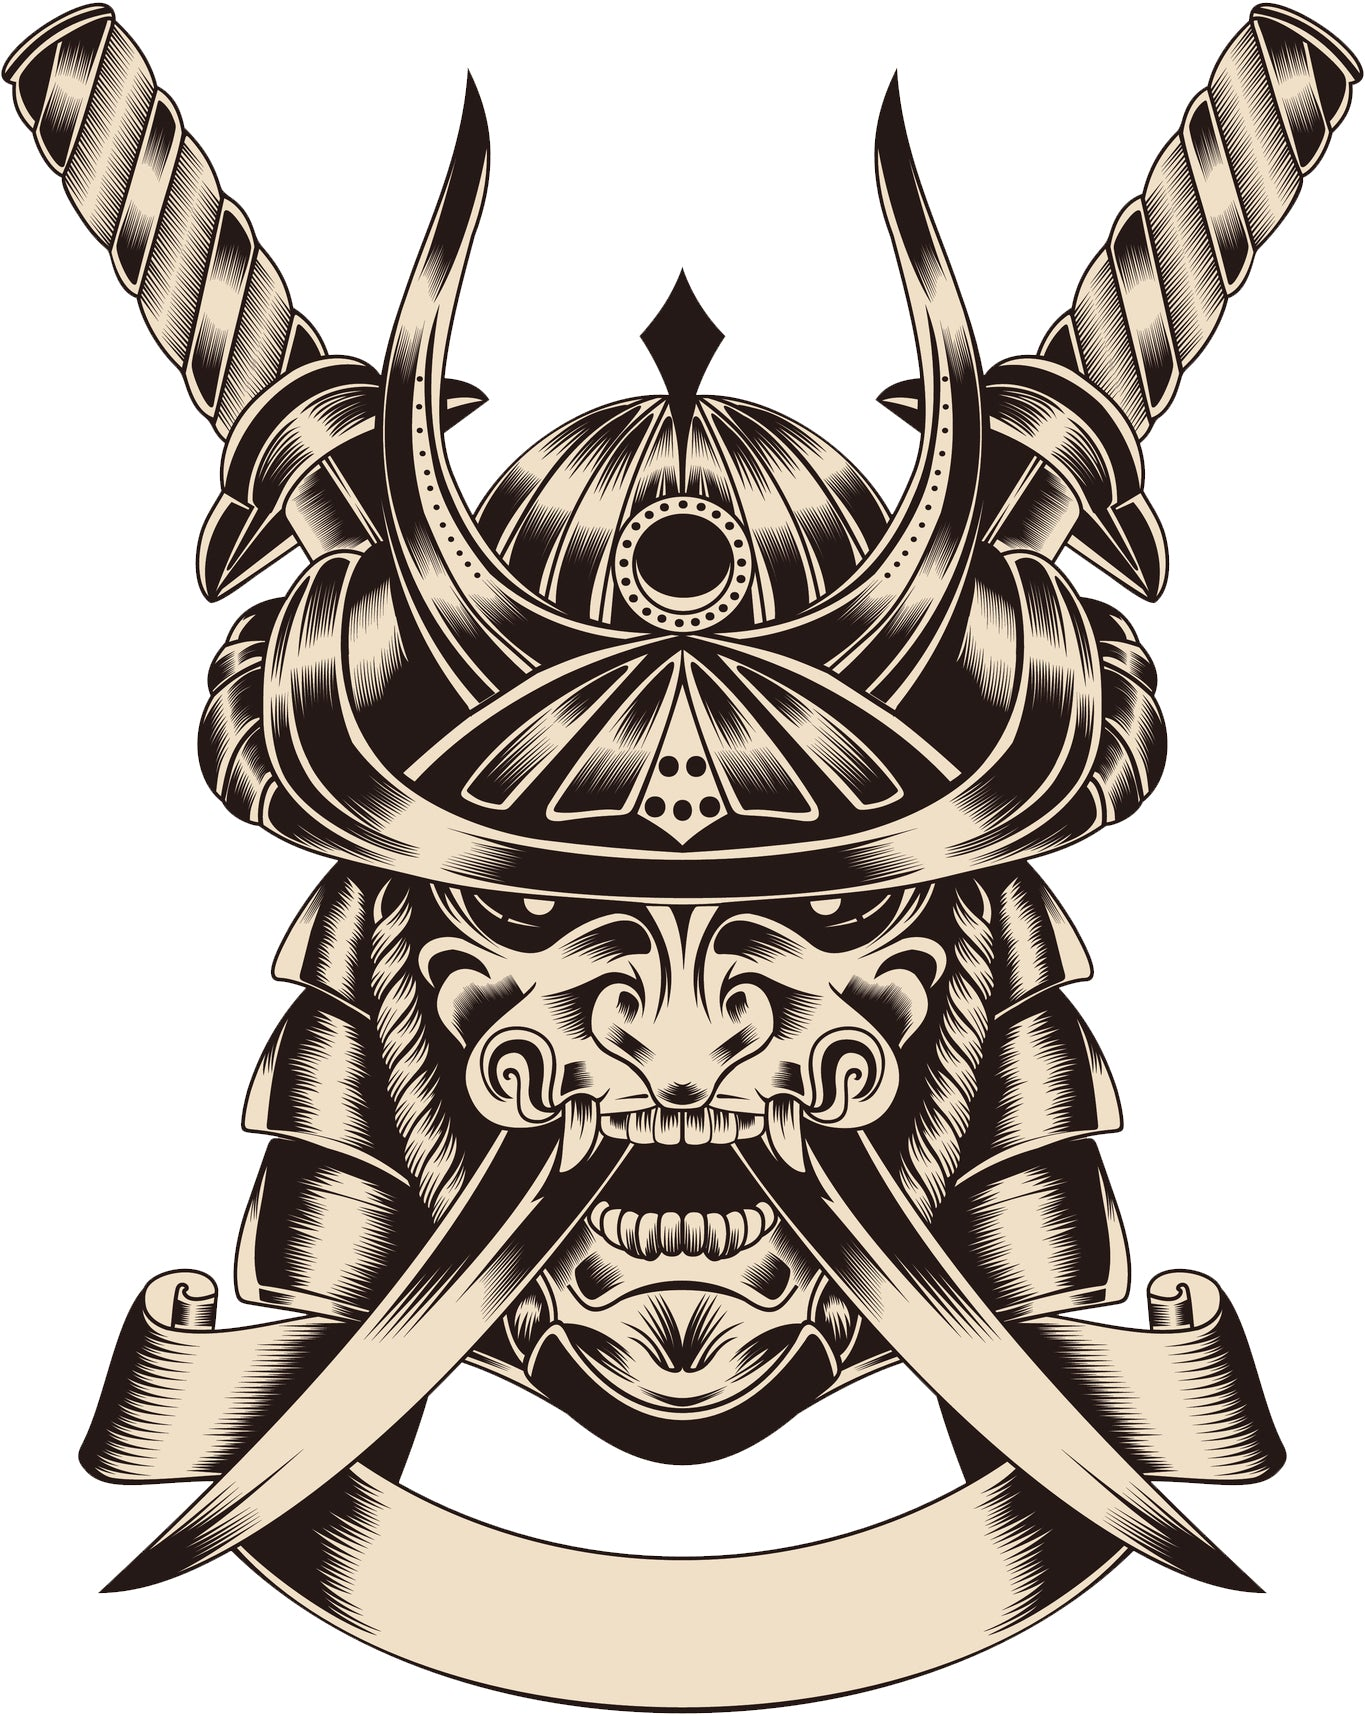 Scary Metal Japanese Soilder with Swords and Banner Vinyl Decal Sticker